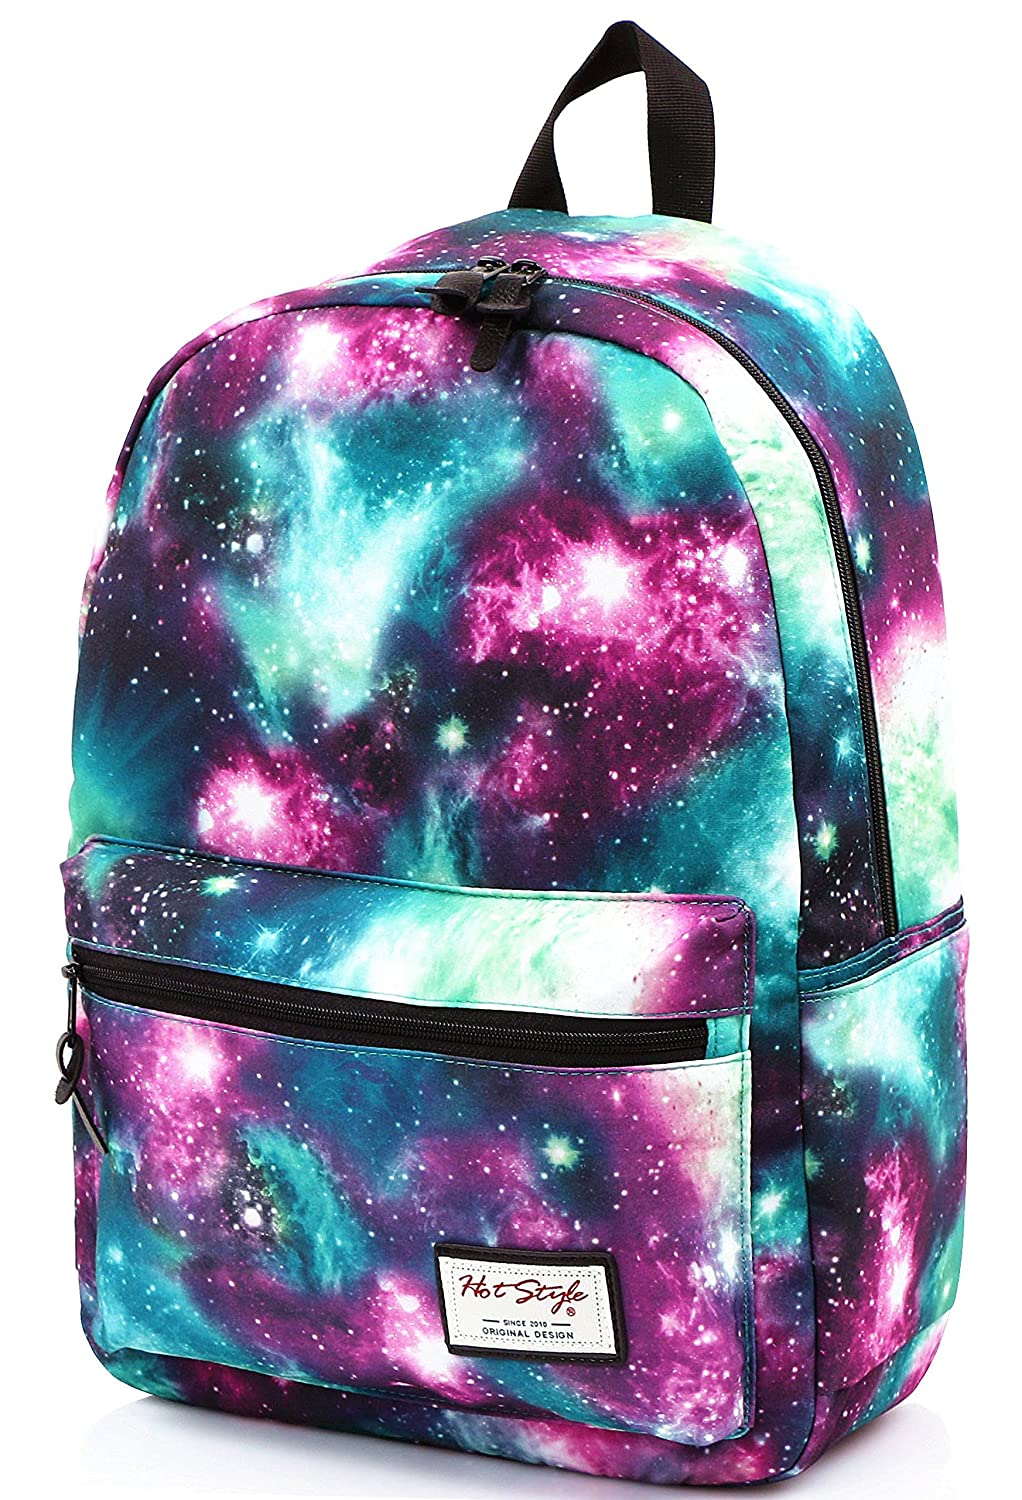 8a300b038e HotStyle TrendyMax Womens School Boys Girls Galaxy Patterned 600D Polyester  Backpack (green)  Amazon.ca  Sports   Outdoors